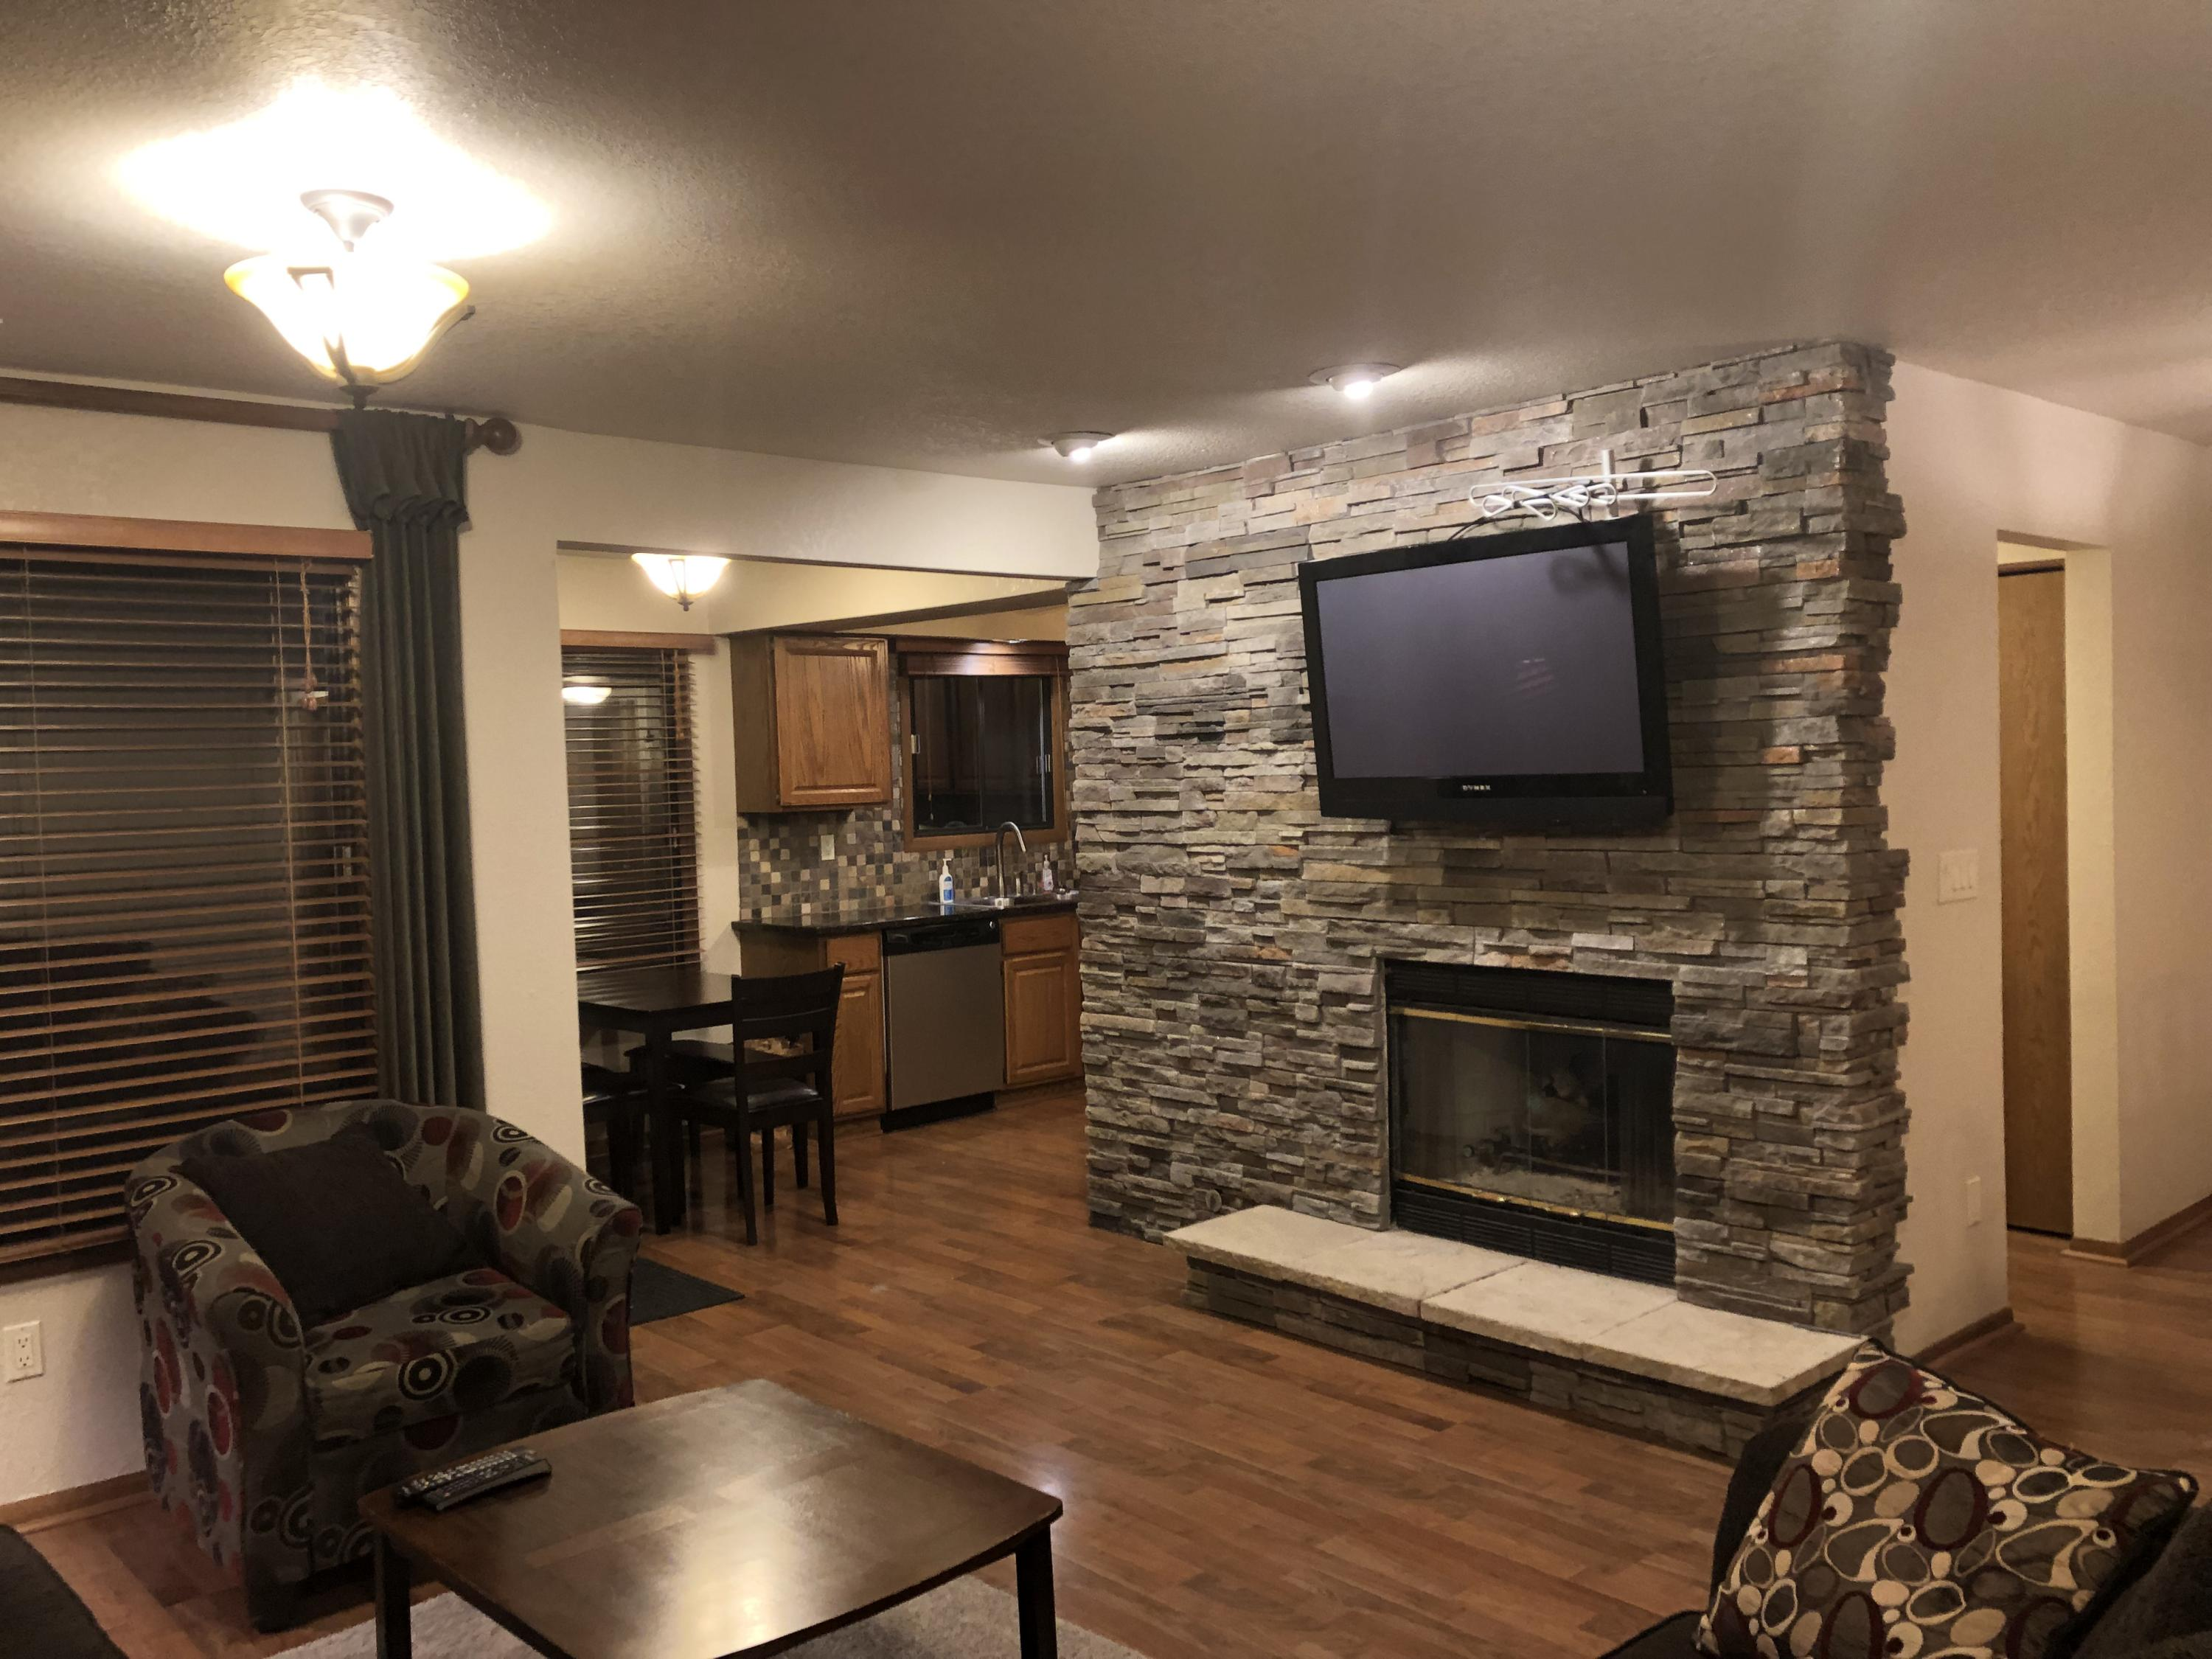 Home | Lakes Property Management